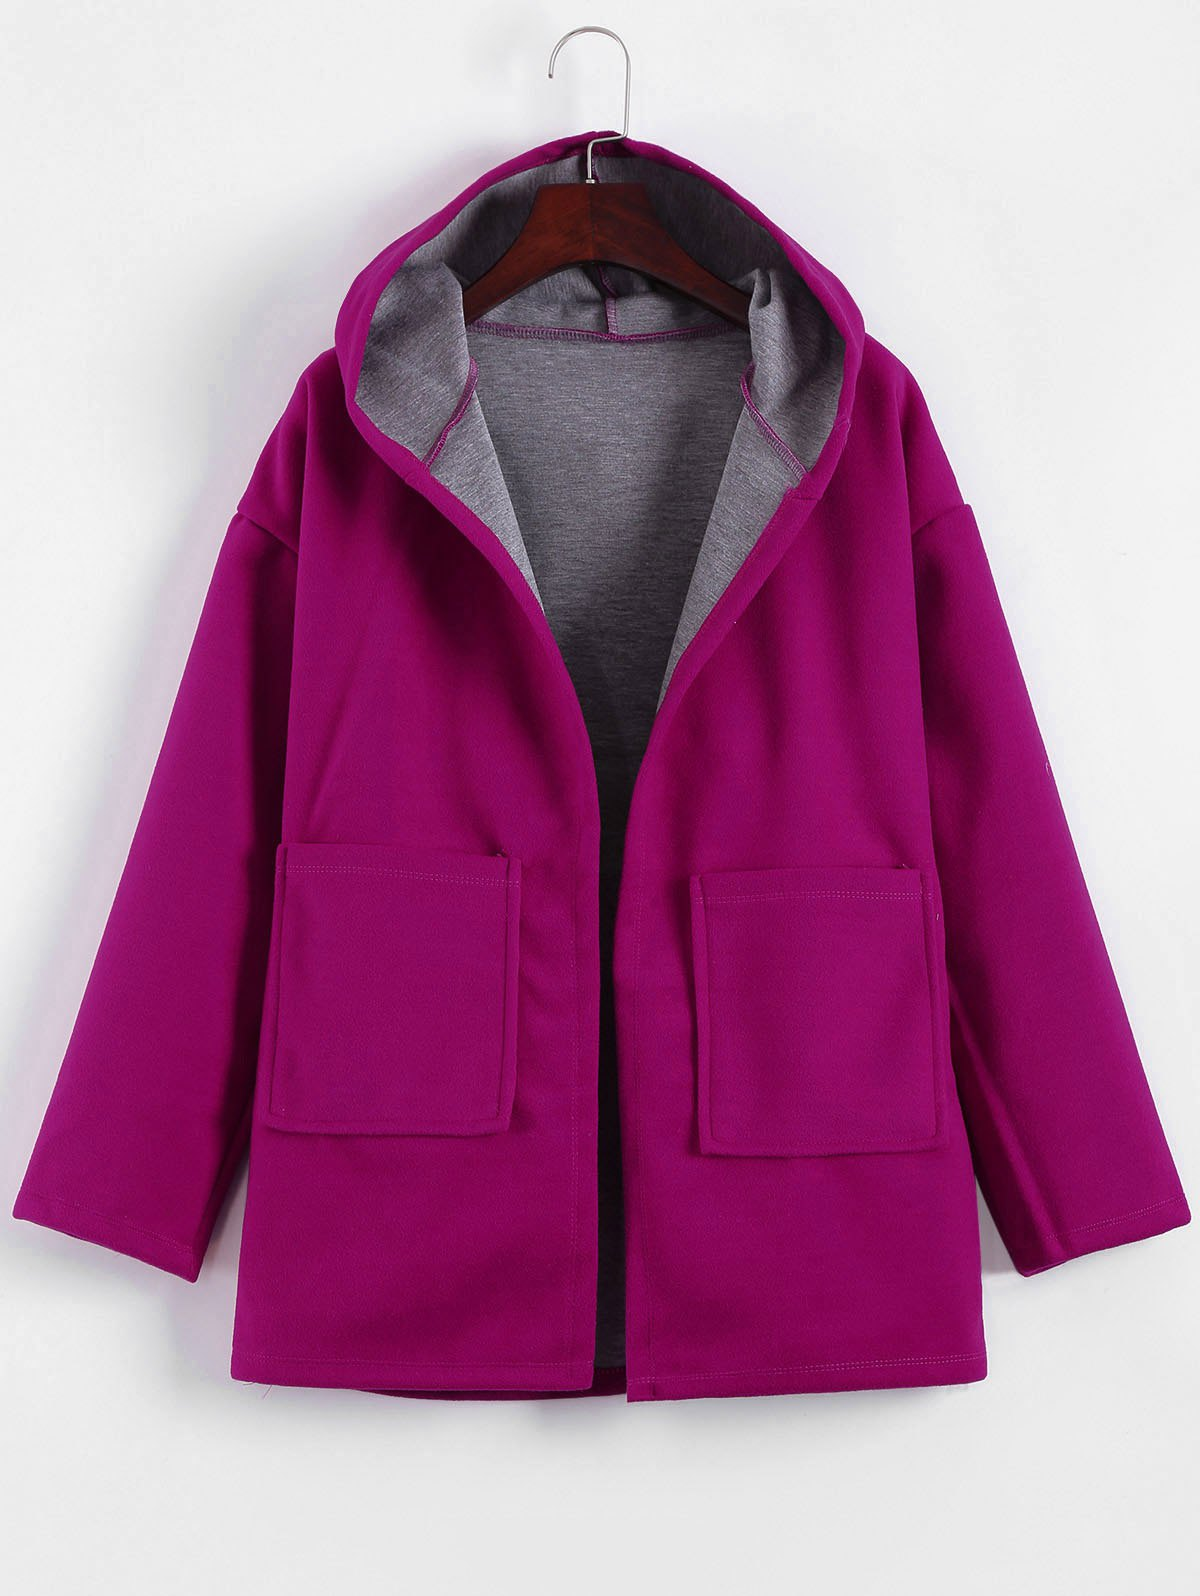 Plus Size Hooded Candy Color Long Open Front Coat от Dresslily.com INT